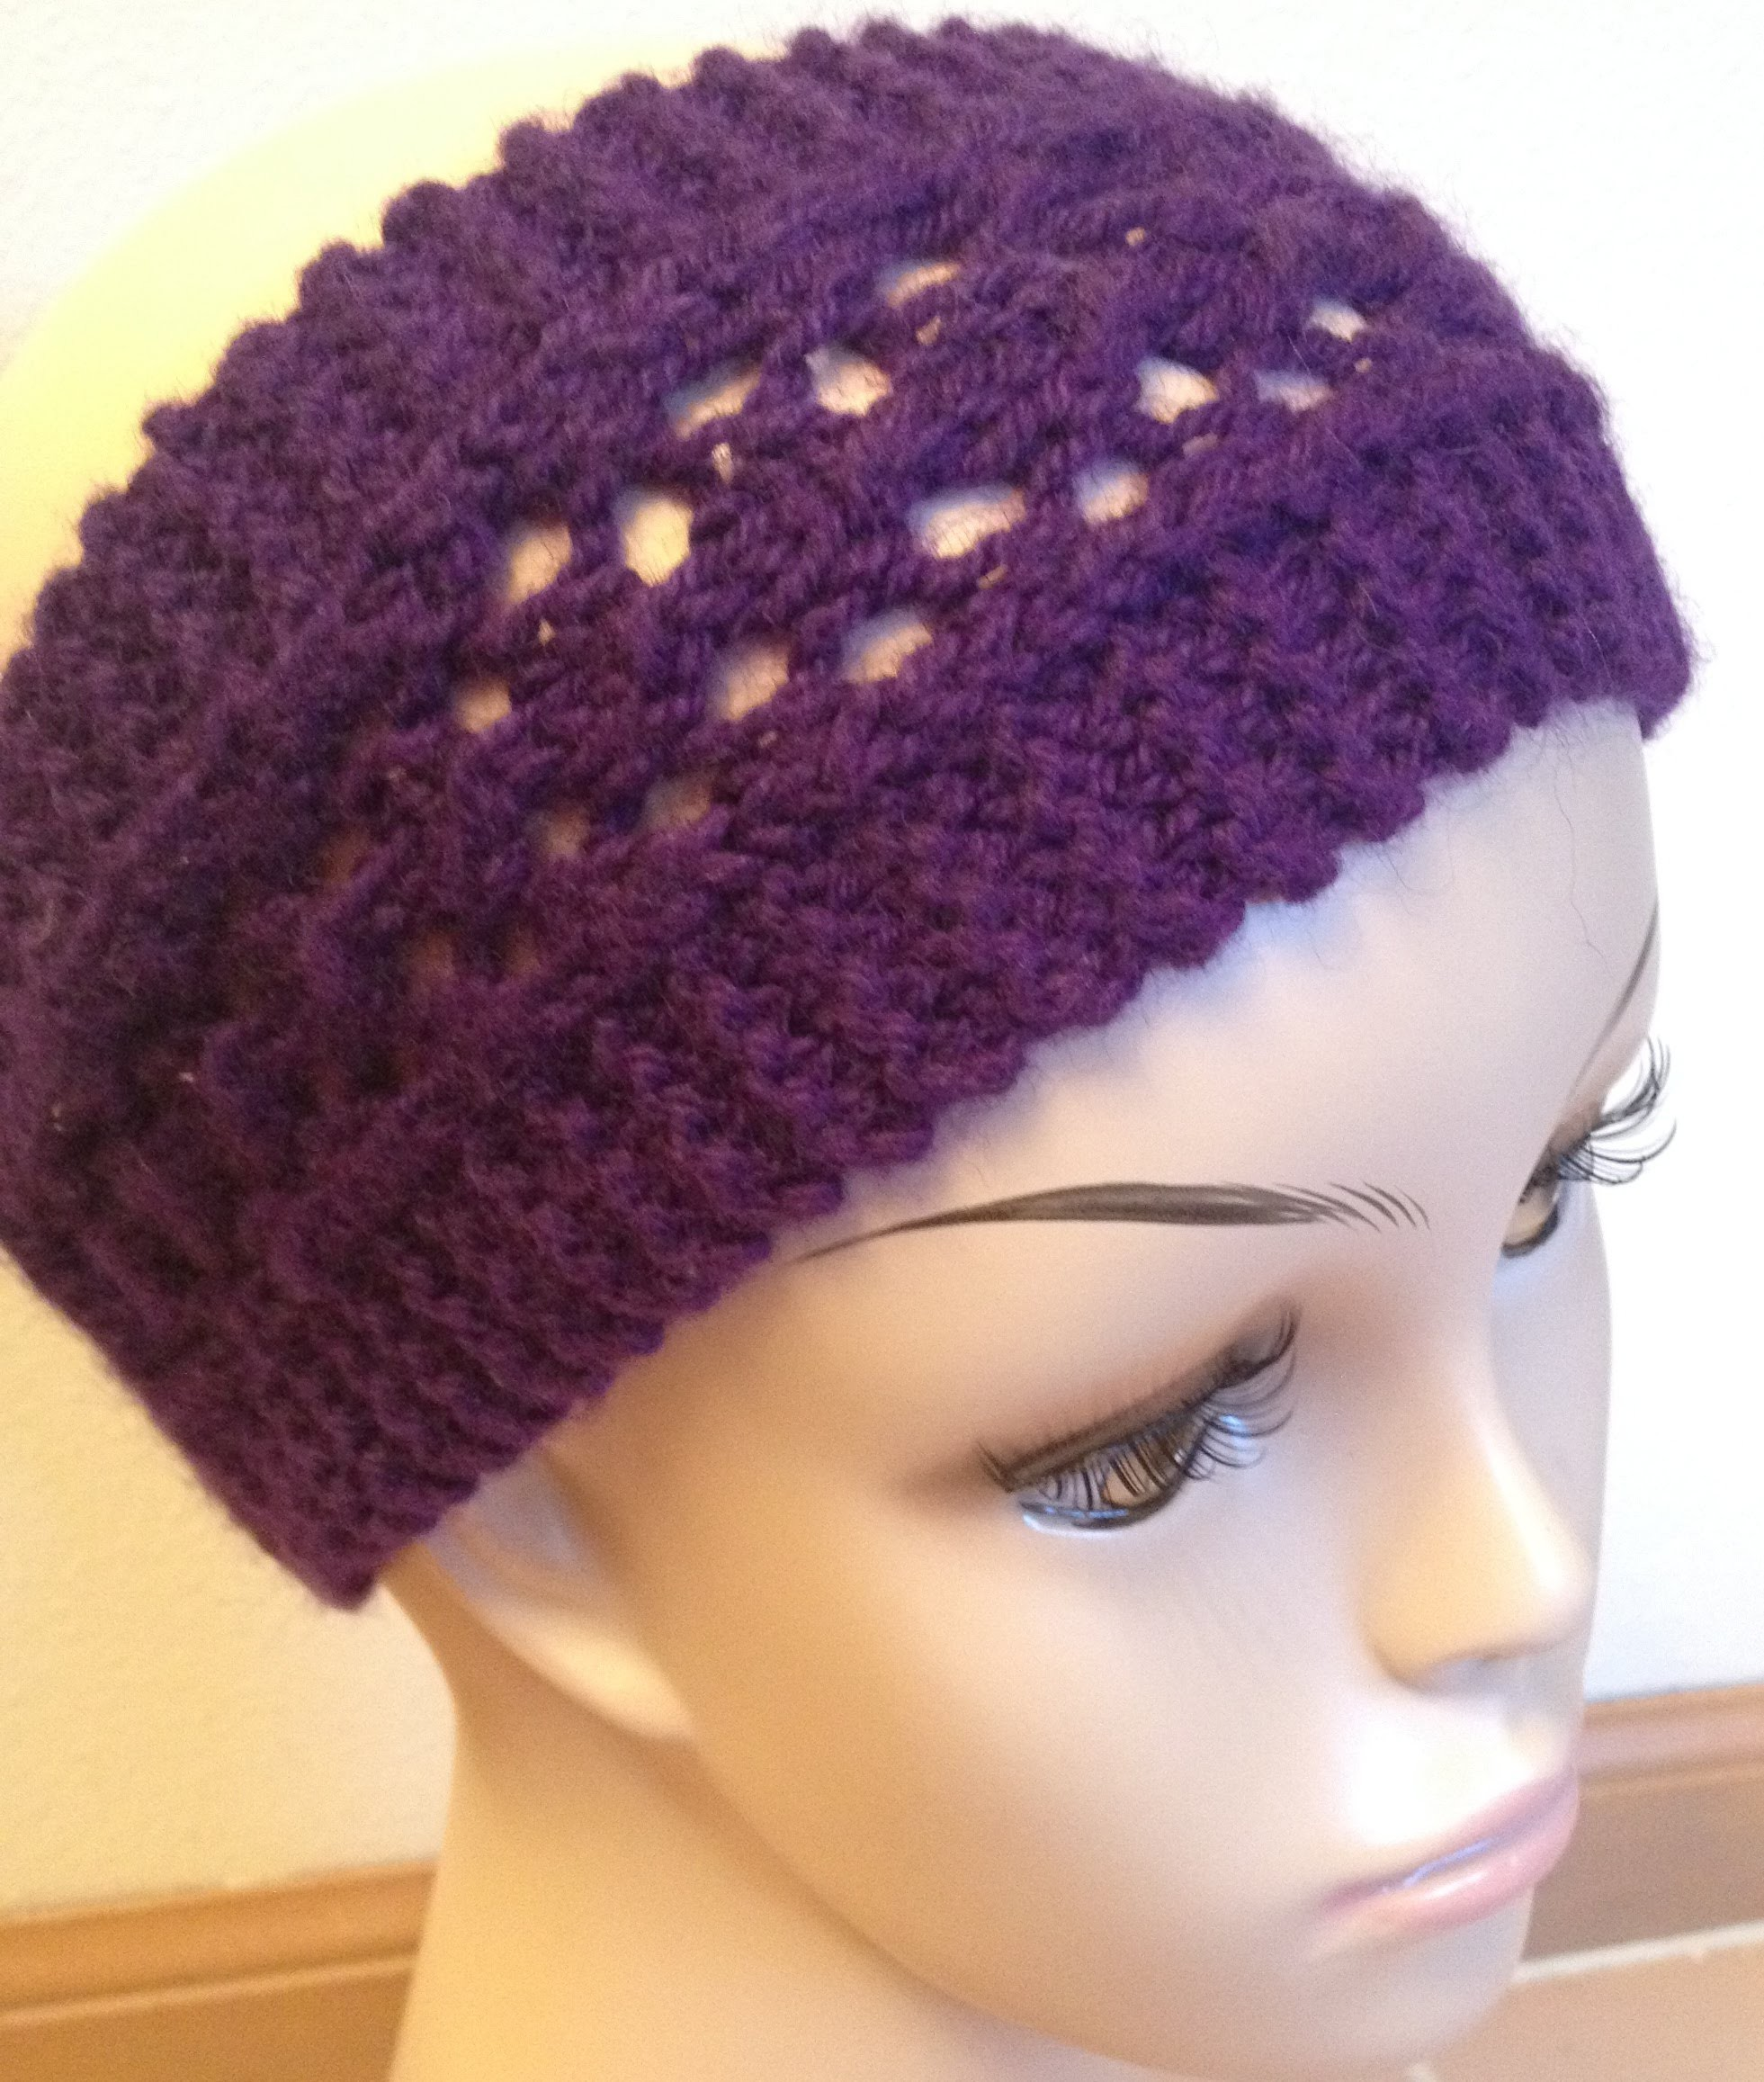 How To Knit Easy Lacy Headband - Knitting Lace For Beginners